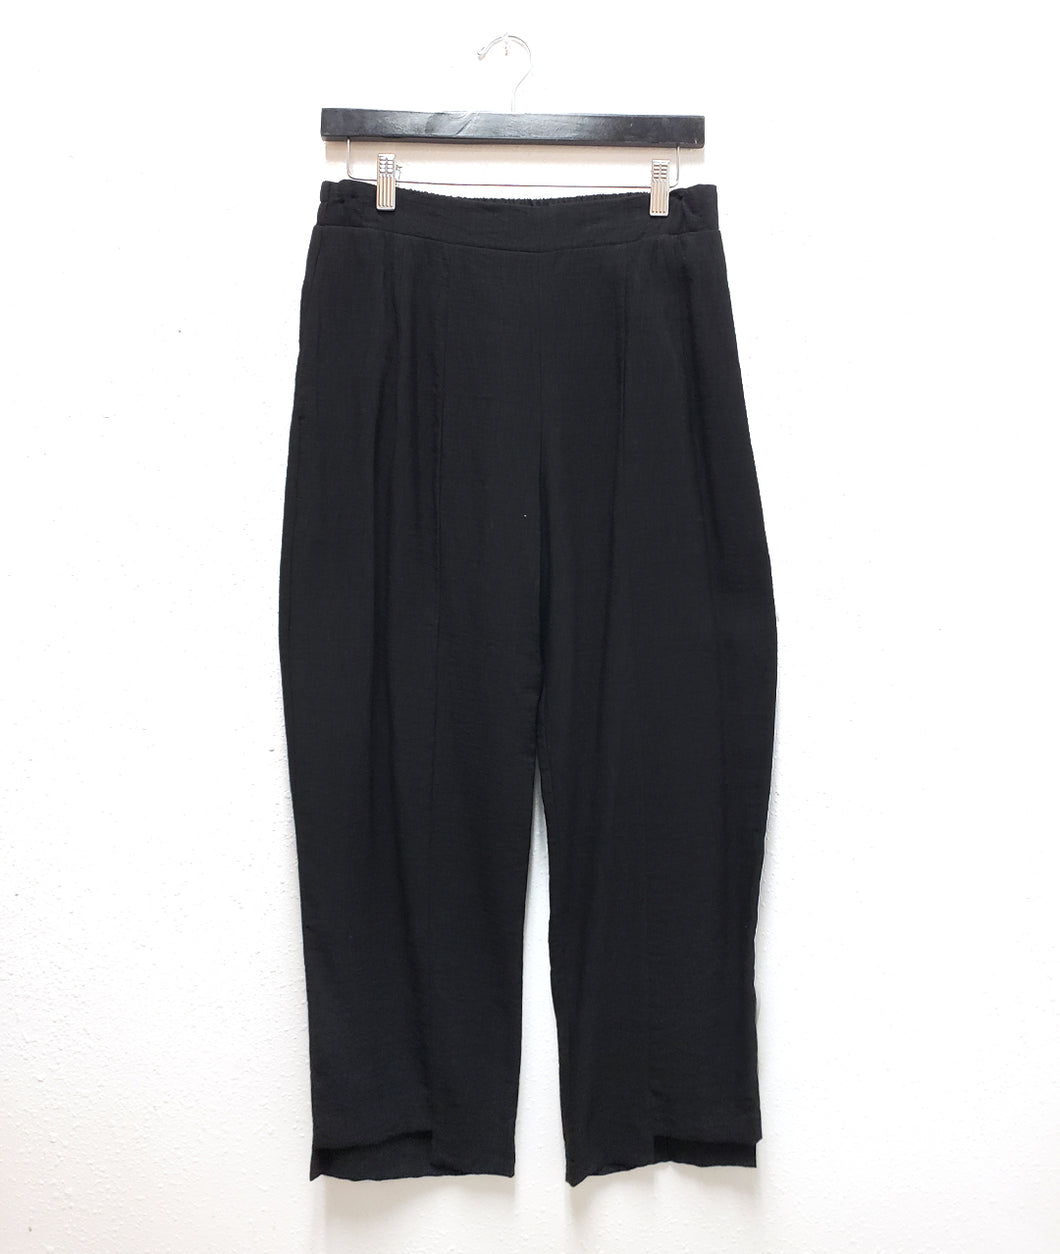 black straight leg pant with a stair hem